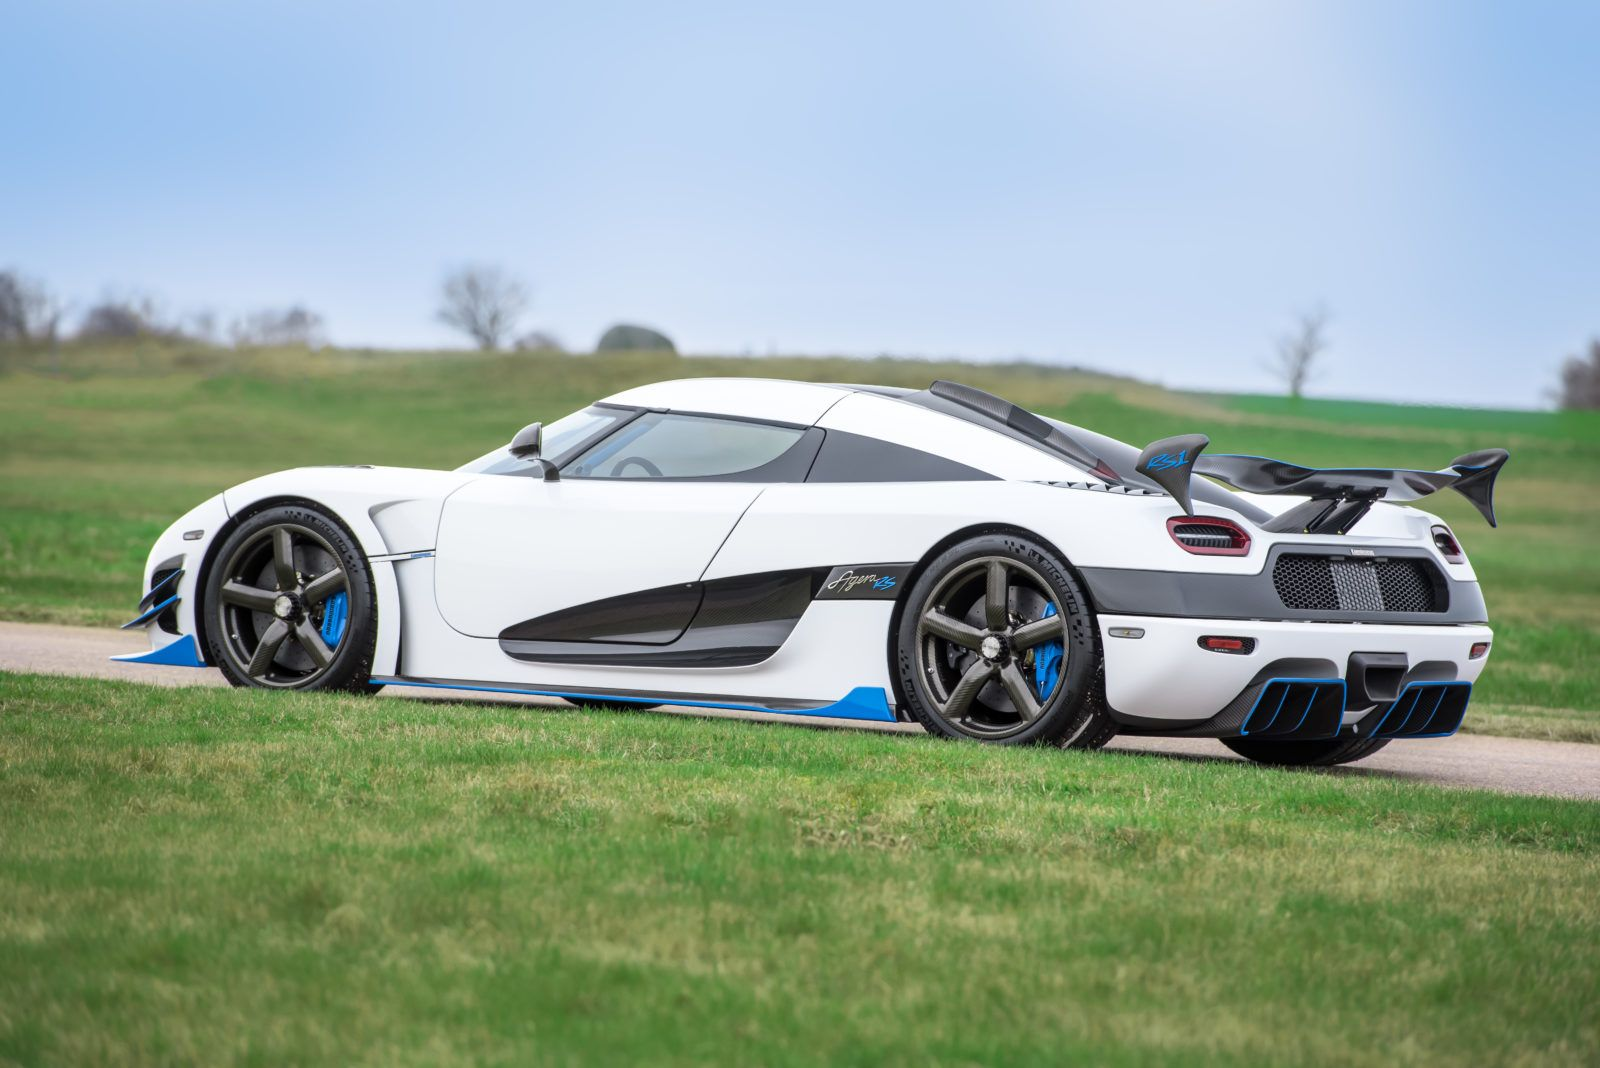 Entry Level Koenigsegg Supercar To Debut In 2020 Koenigsegg Super Cars Classic Cars